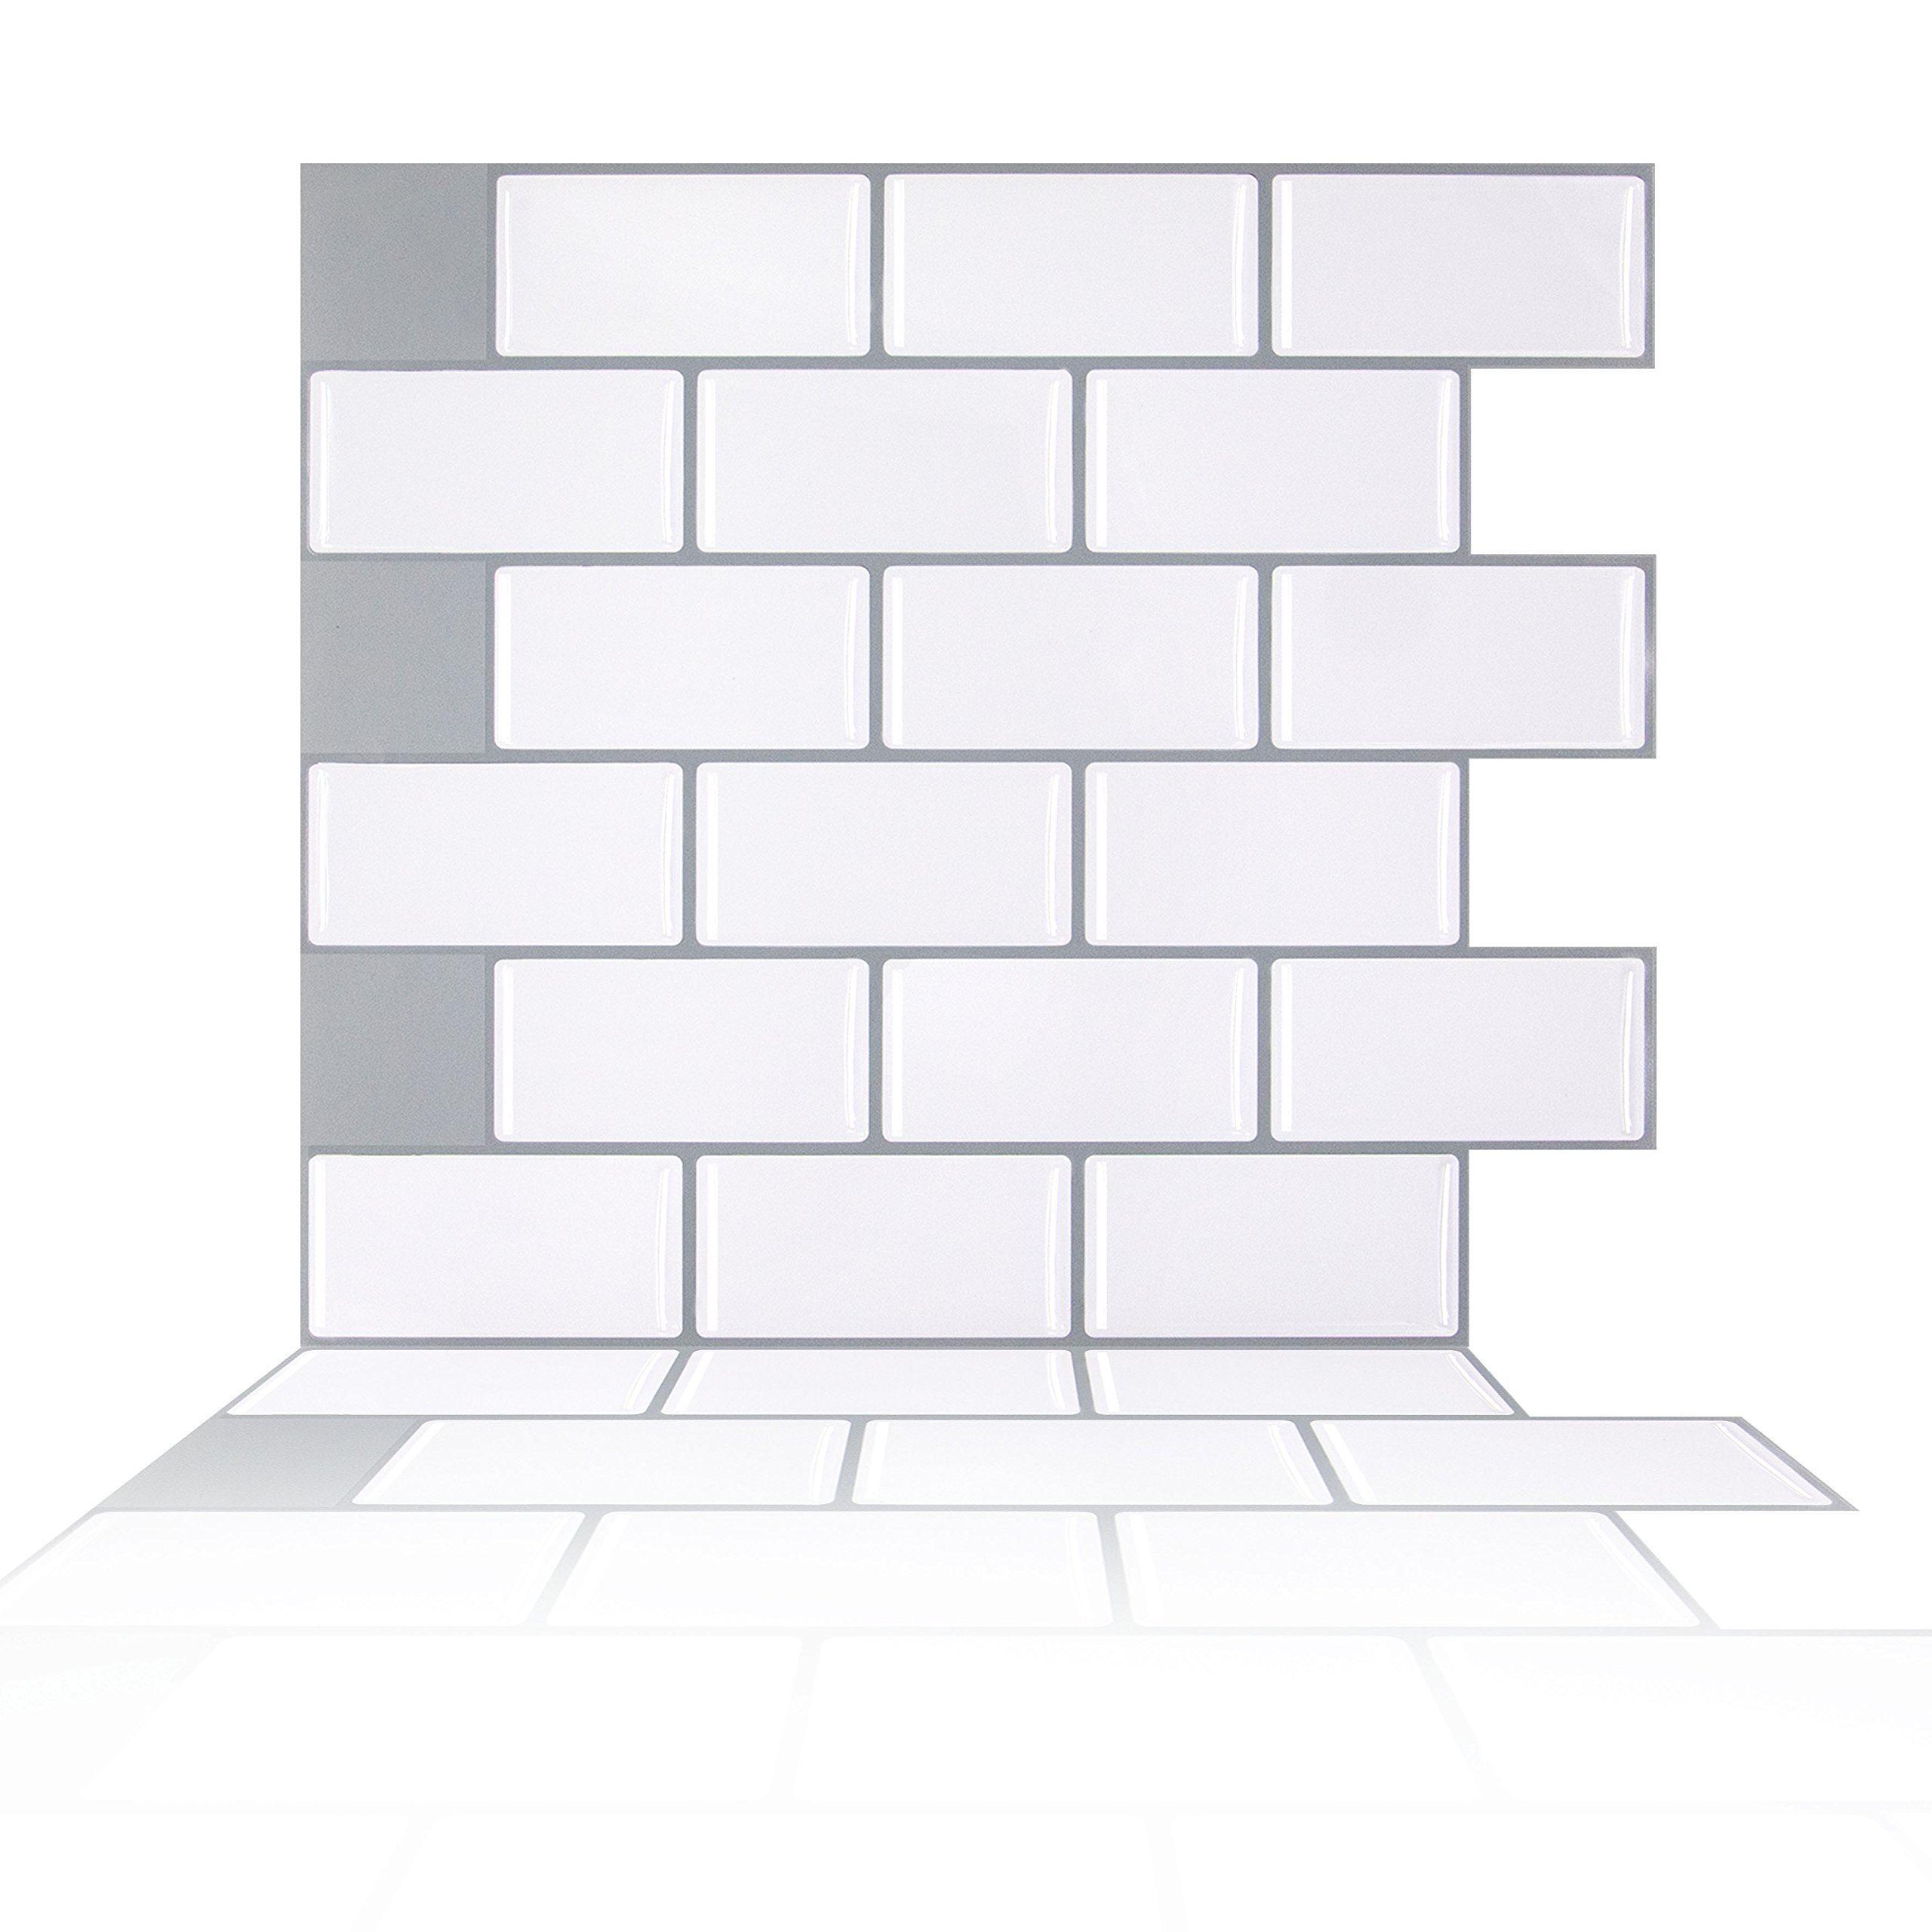 Cheap Subway Tile Samples Find Subway Tile Samples Deals On Line At